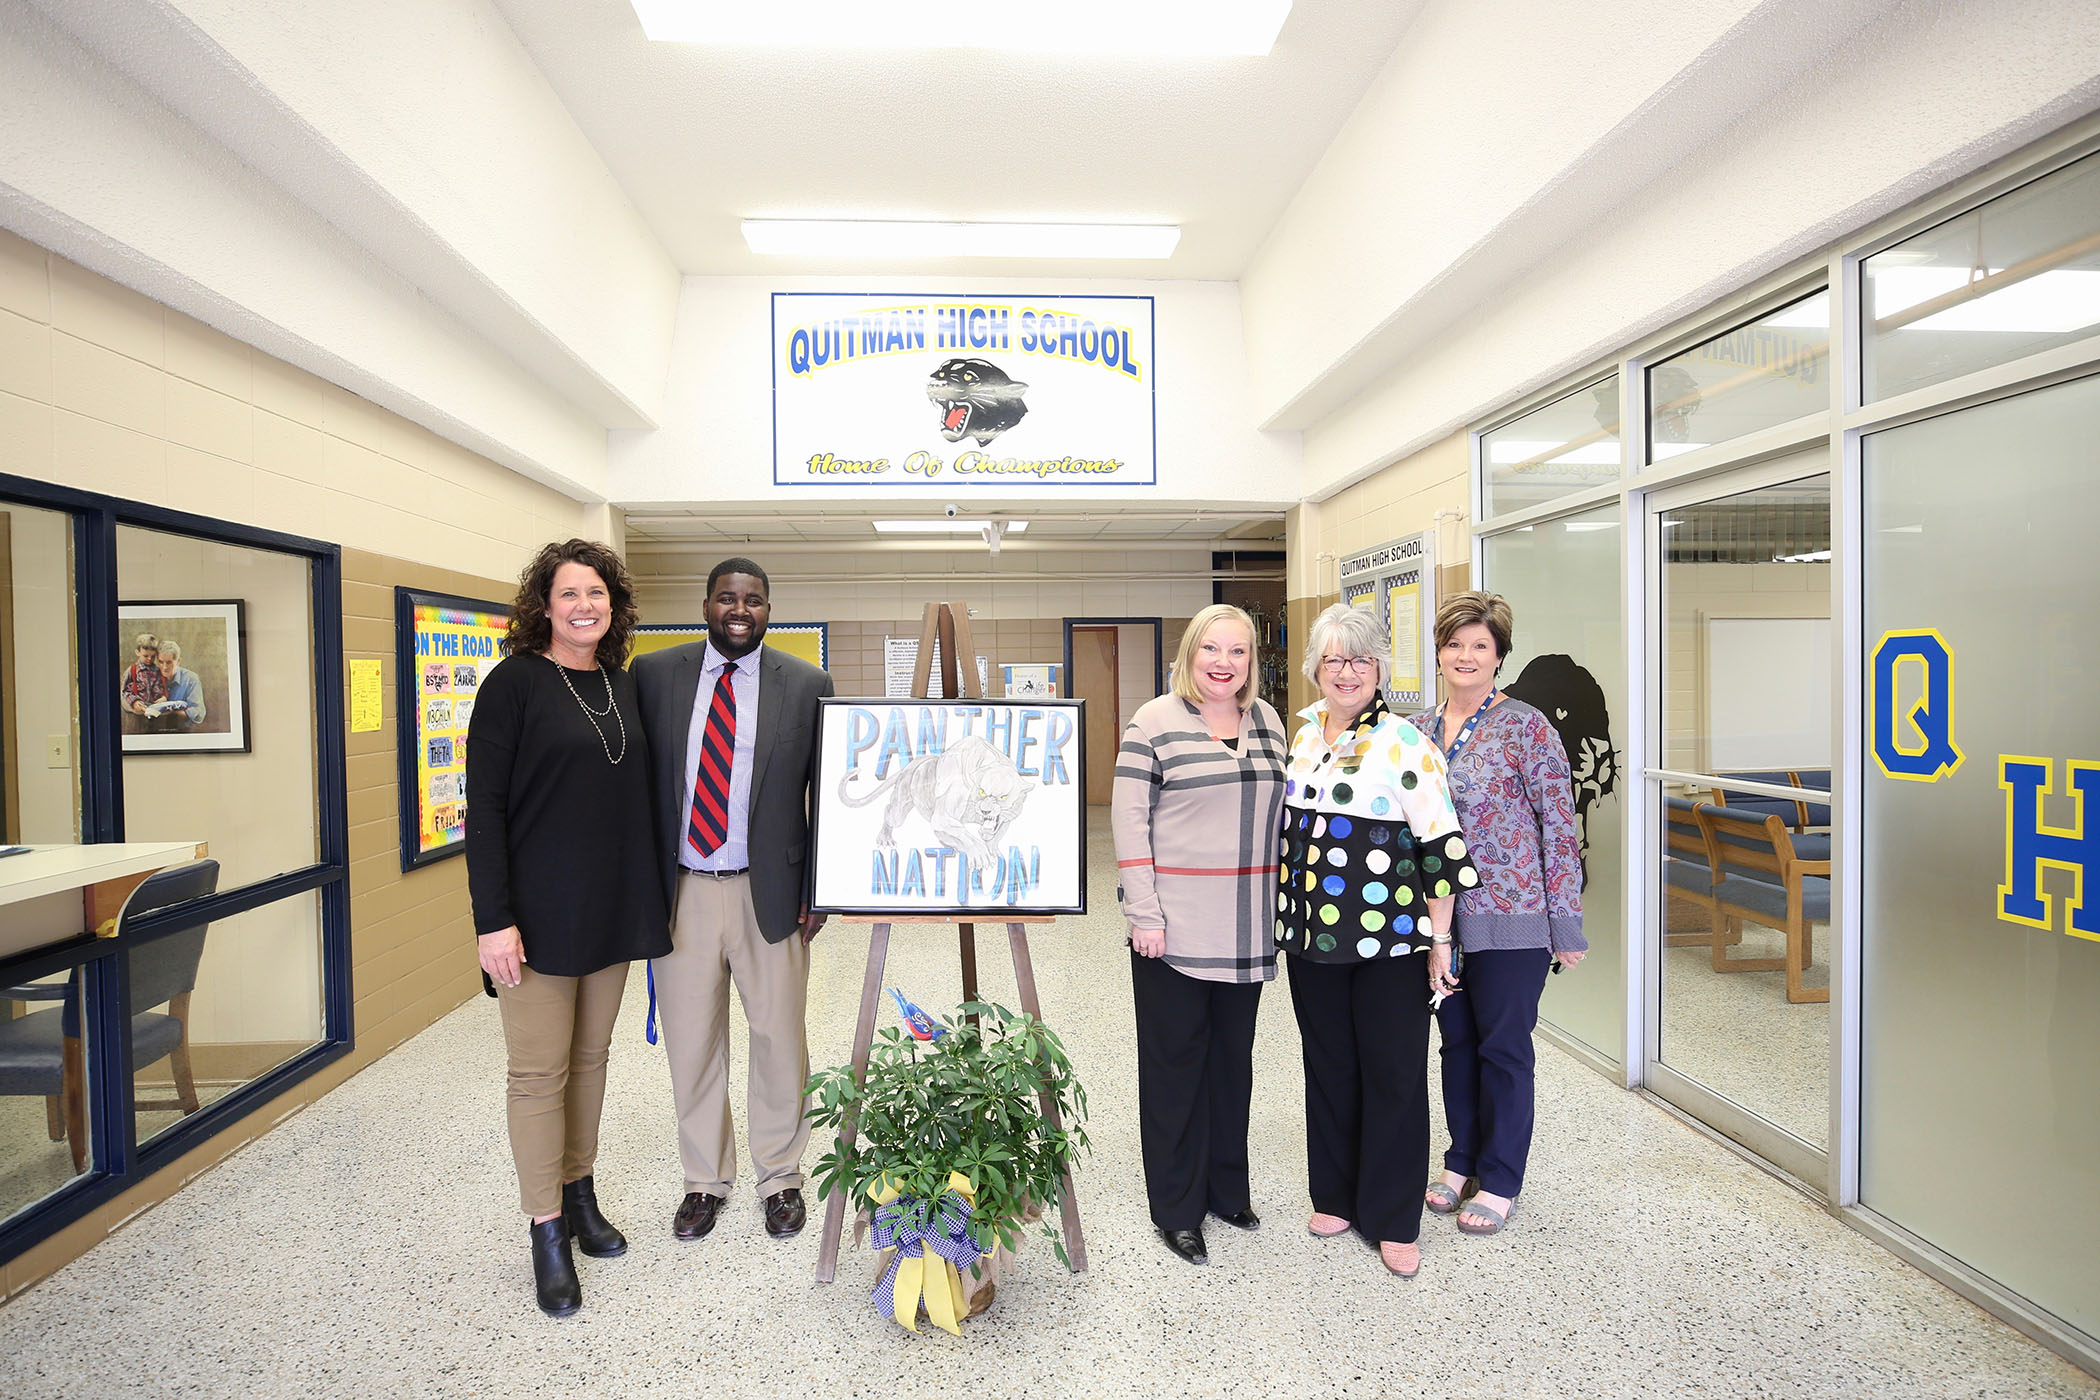 Mississippi's Teacher of the Year poses for a photo at QHS.